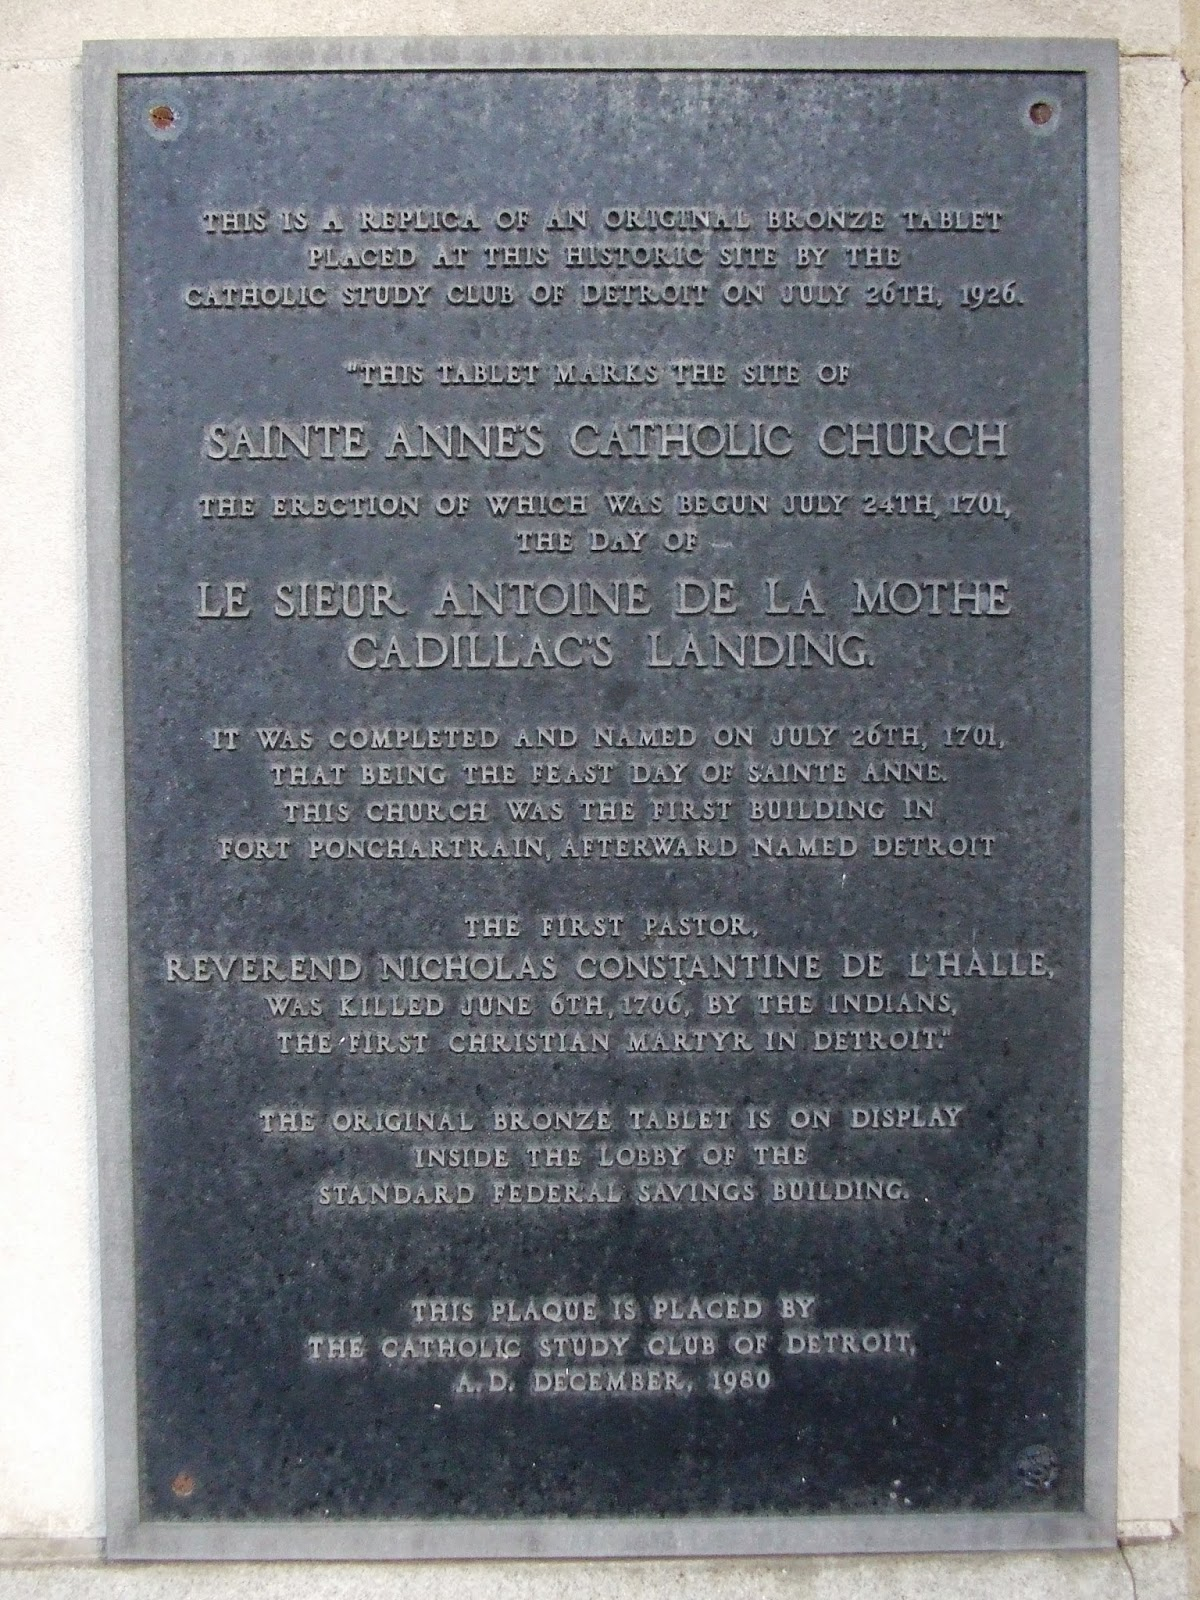 A plaque on the corner of Griswold and Jefferson indicates the location of the first Ste. Anne's